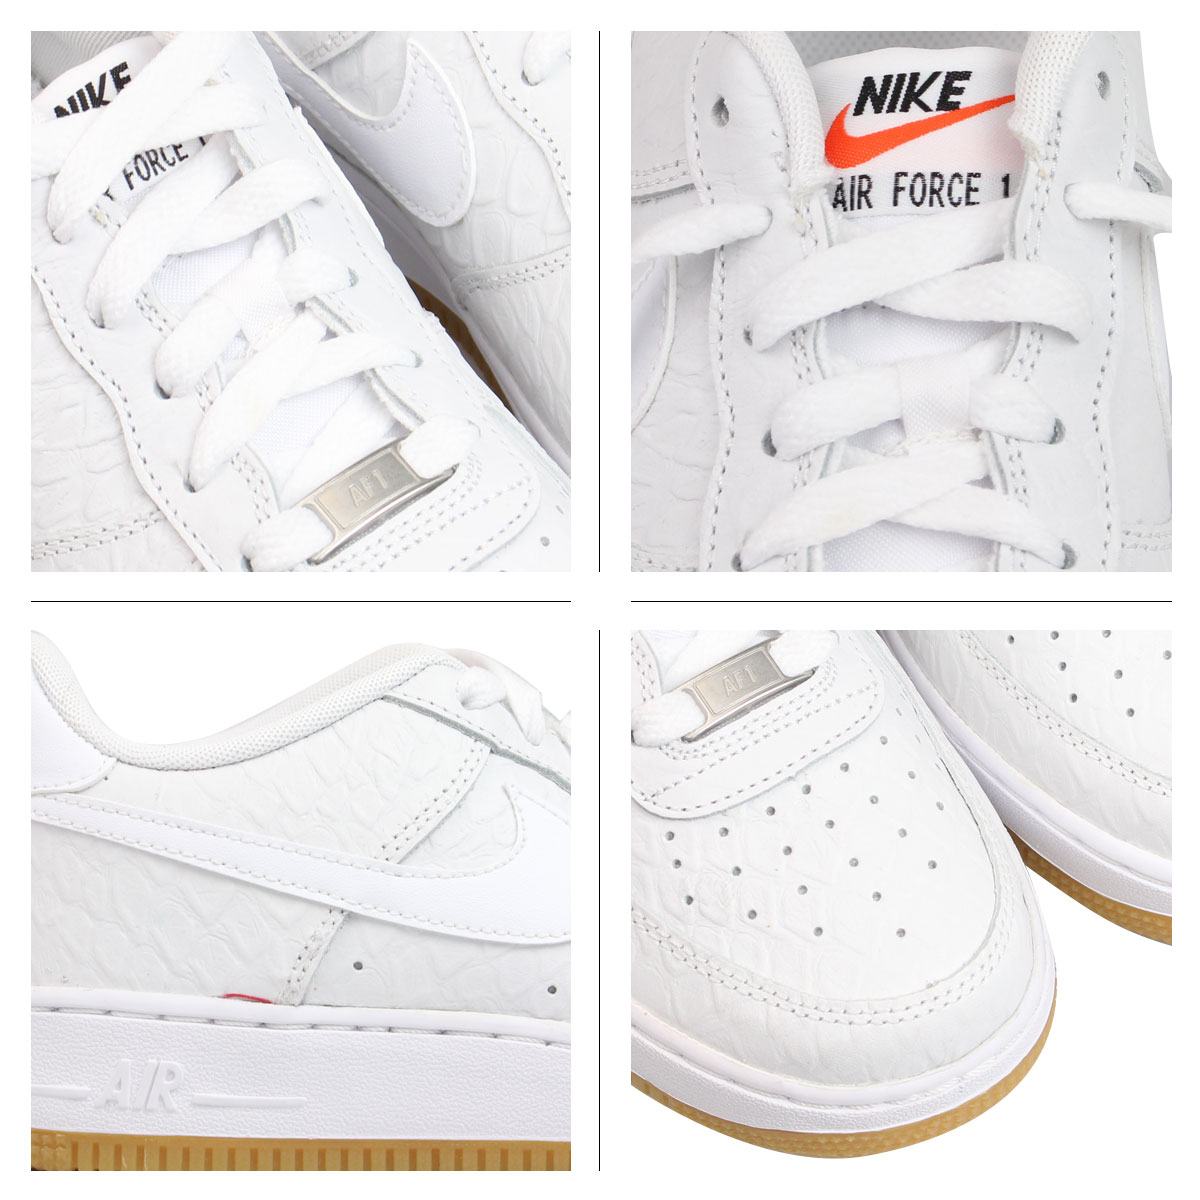 competitive price bb496 fe7dc ... Nike NIKE women s AIR FORCE 1 LOW BG sneakers air force 1 low boys  leather kids